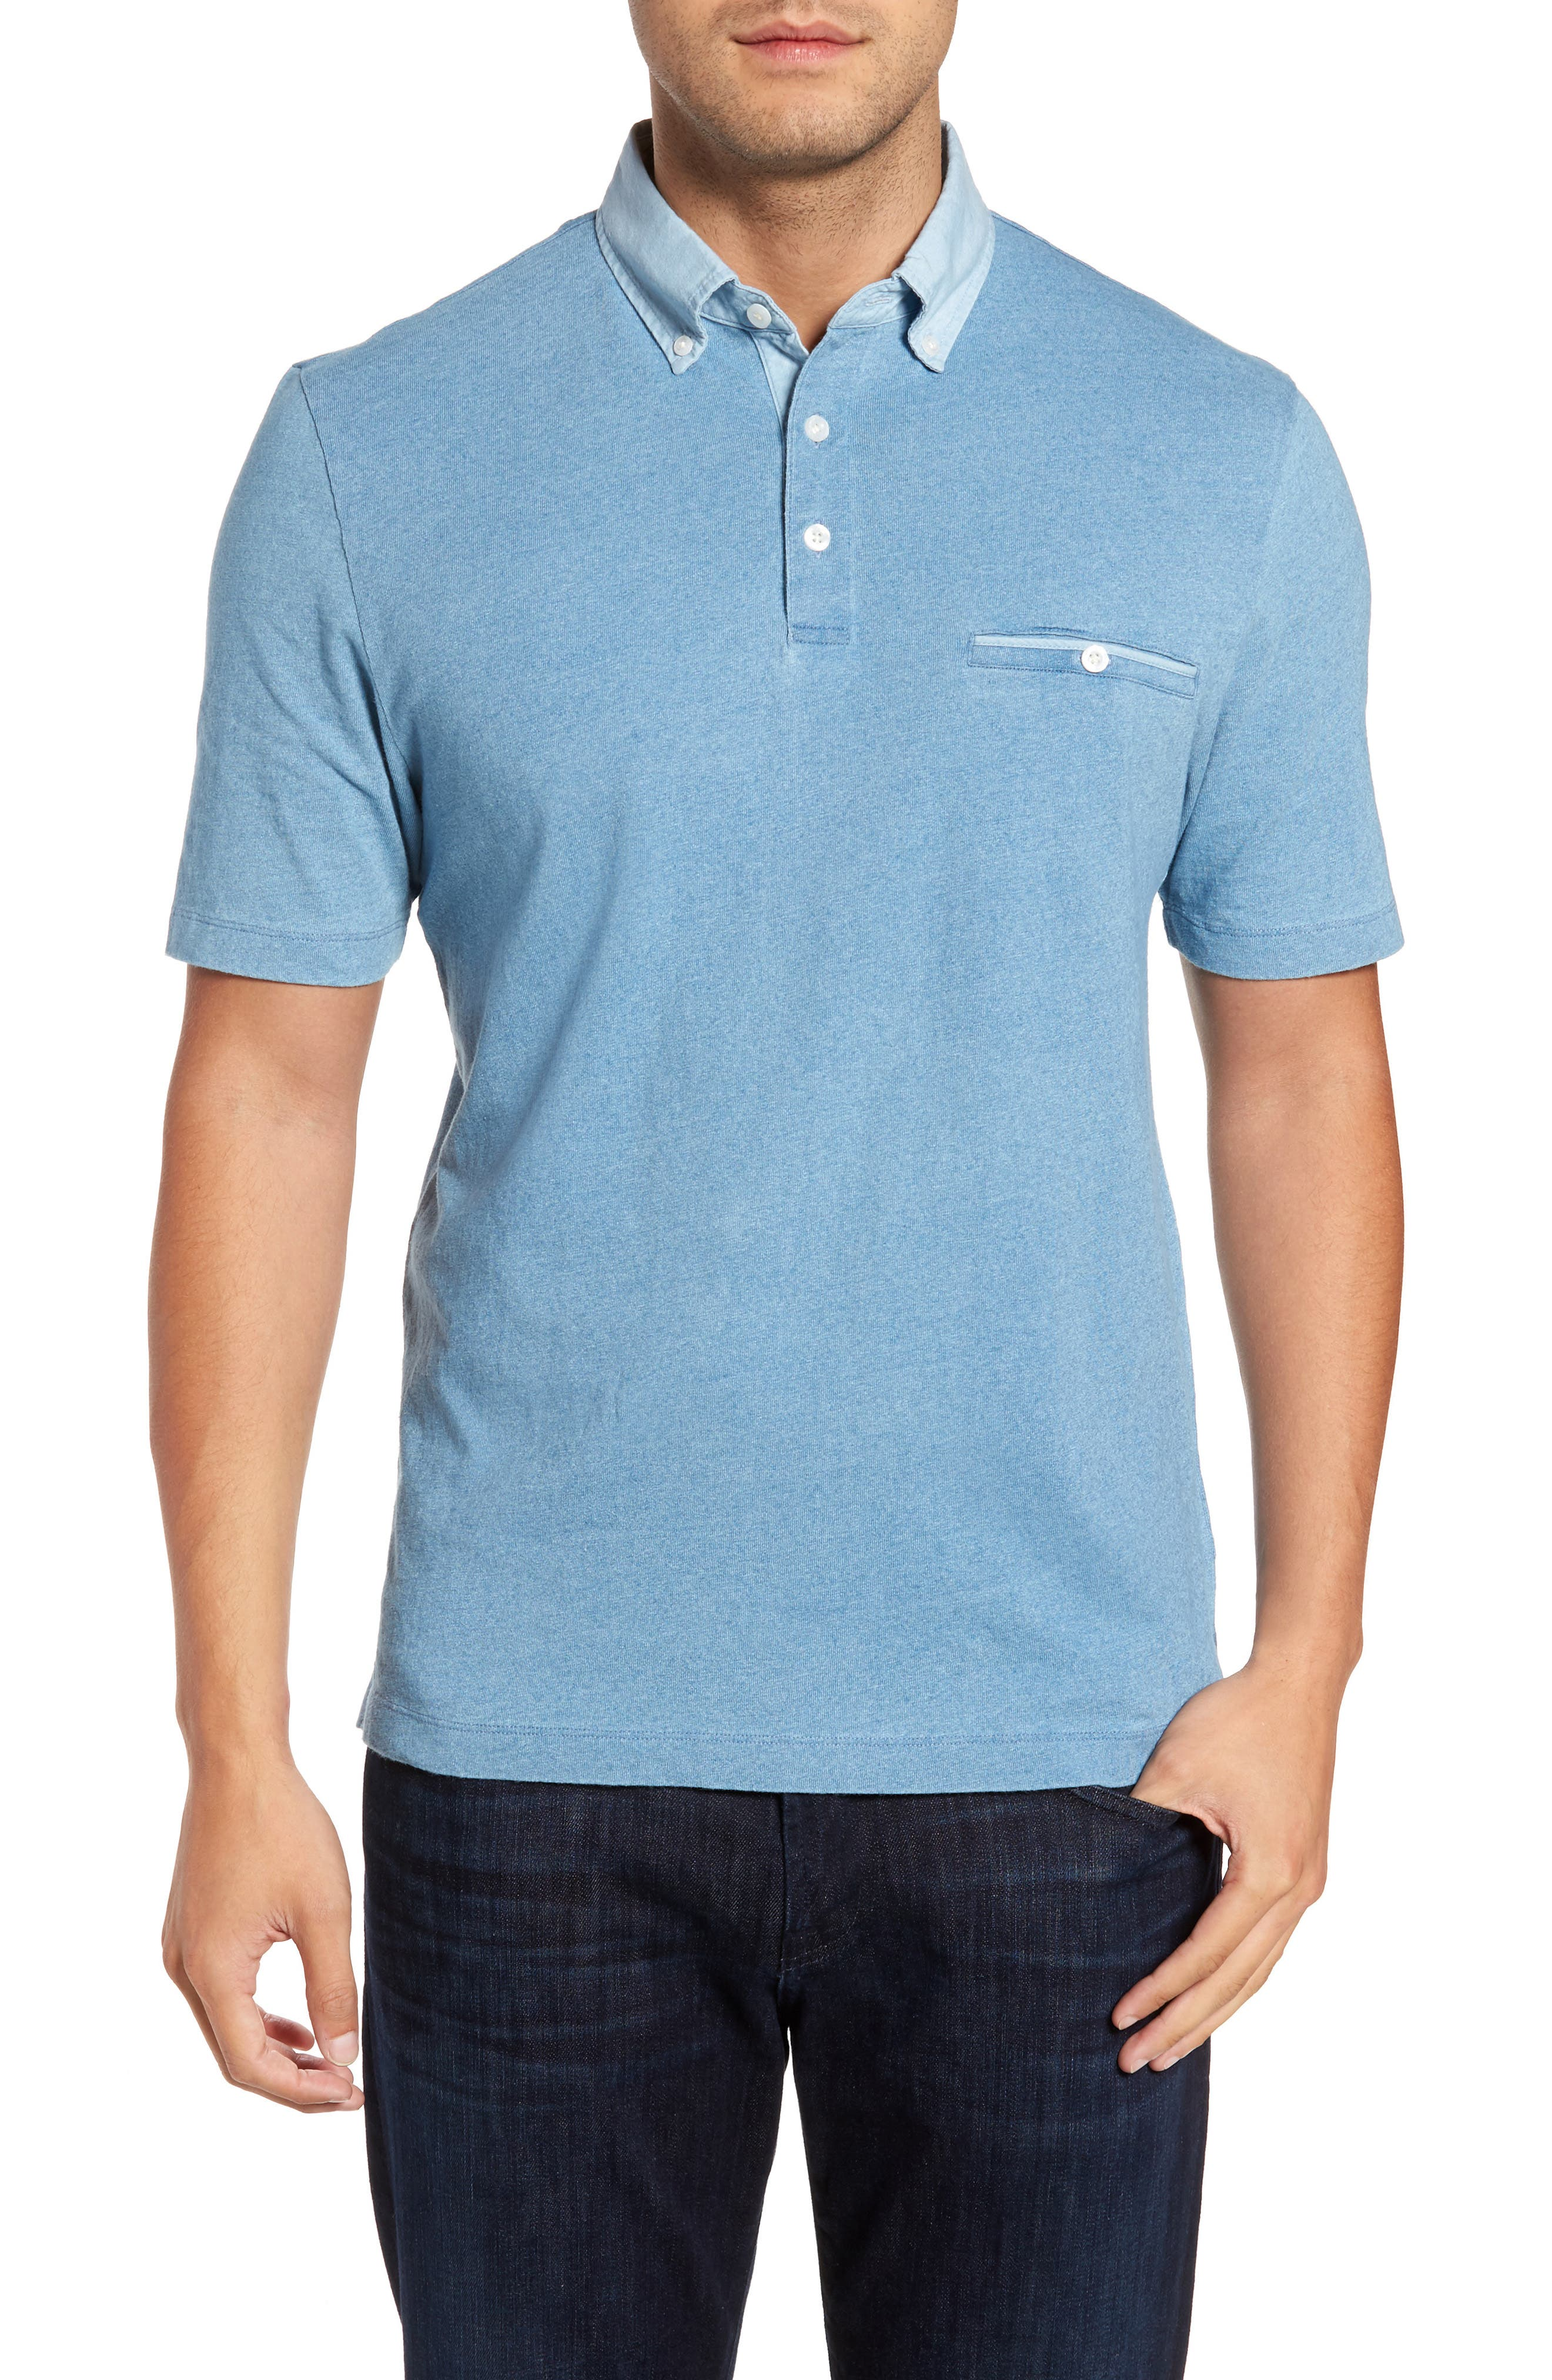 Main Image - Thomas Dean Denim Trim Jersey Polo